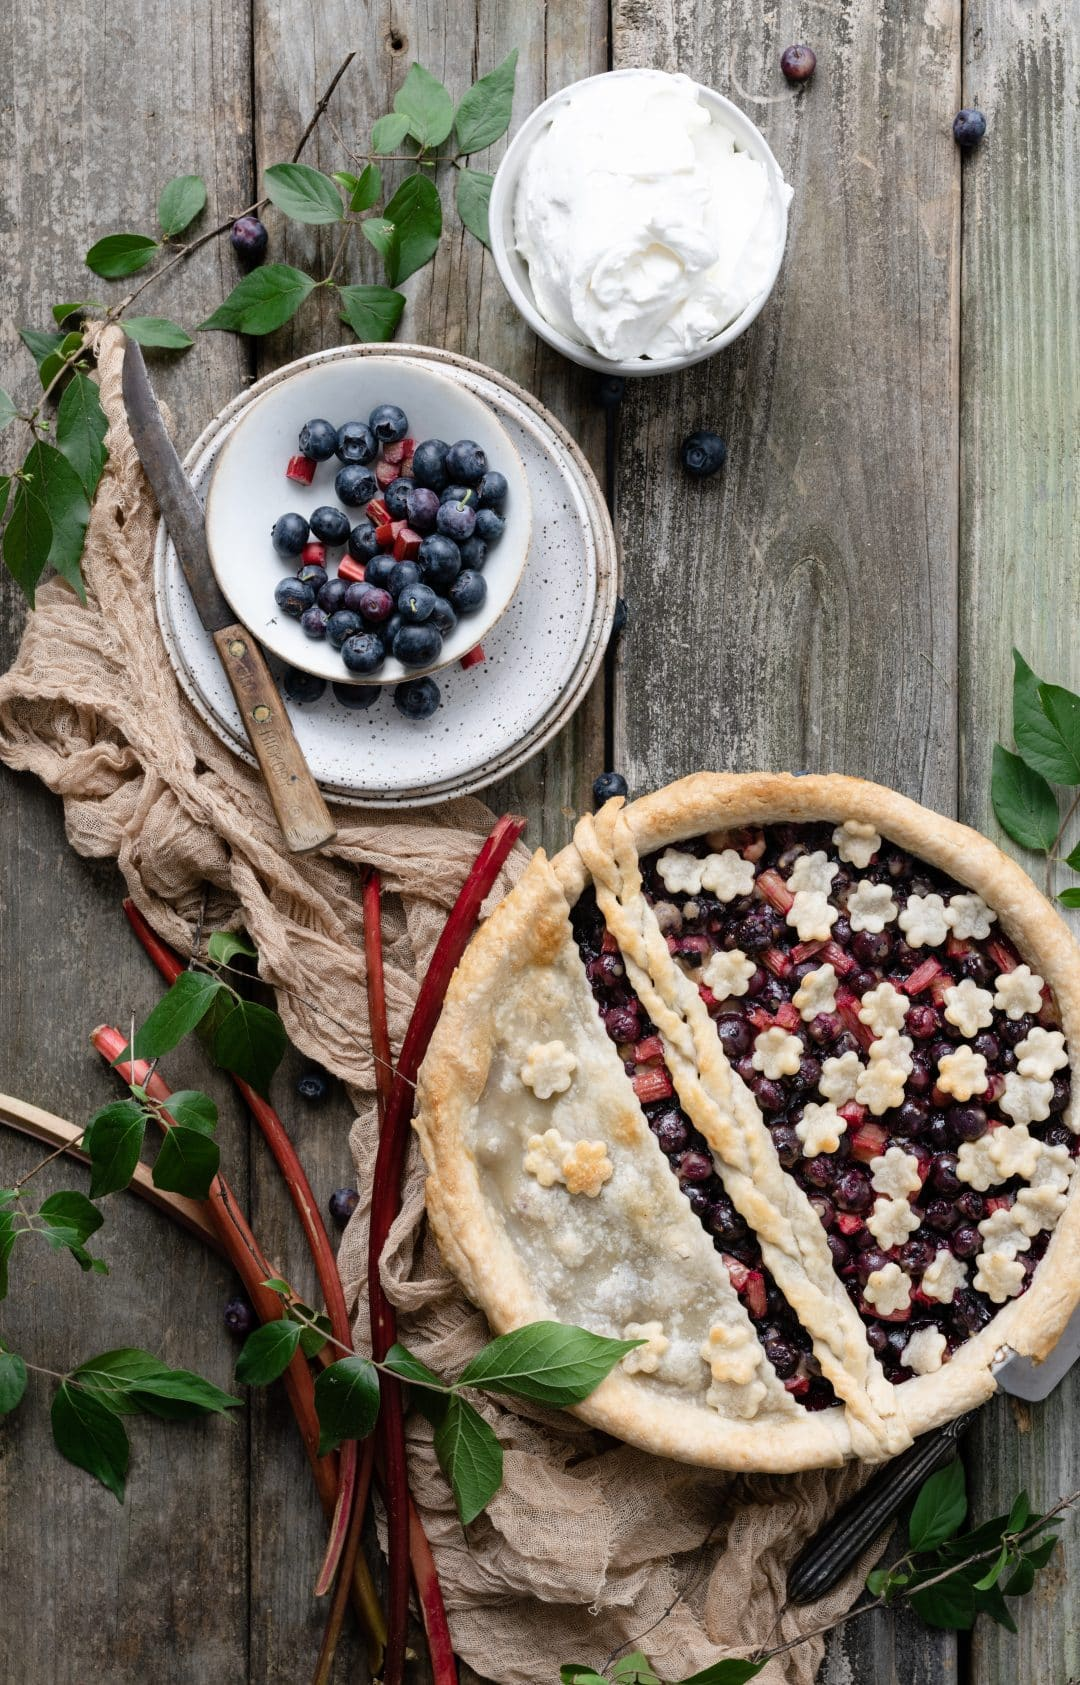 Baked Blueberry Rhubarb Pie with flower crust design